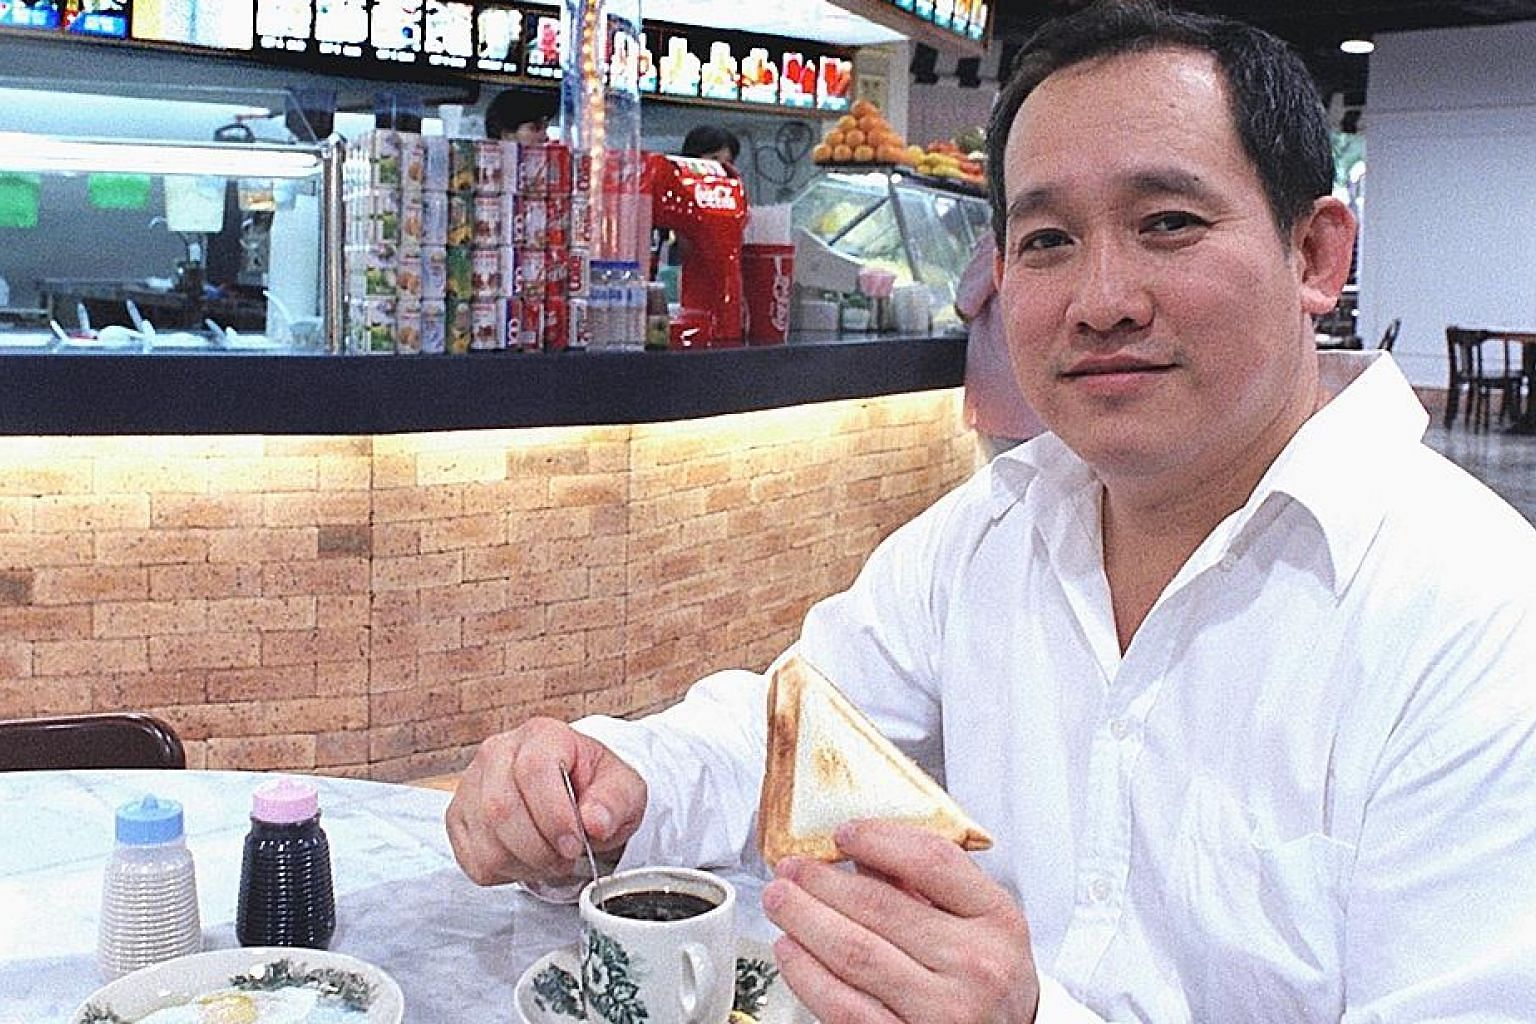 Mr Lim Bee Huat, seen here in an old file photo, started working as a coffee boy when he was nine. Today, his Kopitiam Investment has foodcourts, coffee shops and hawker centres islandwide, including flagship outlet Lau Pa Sat.